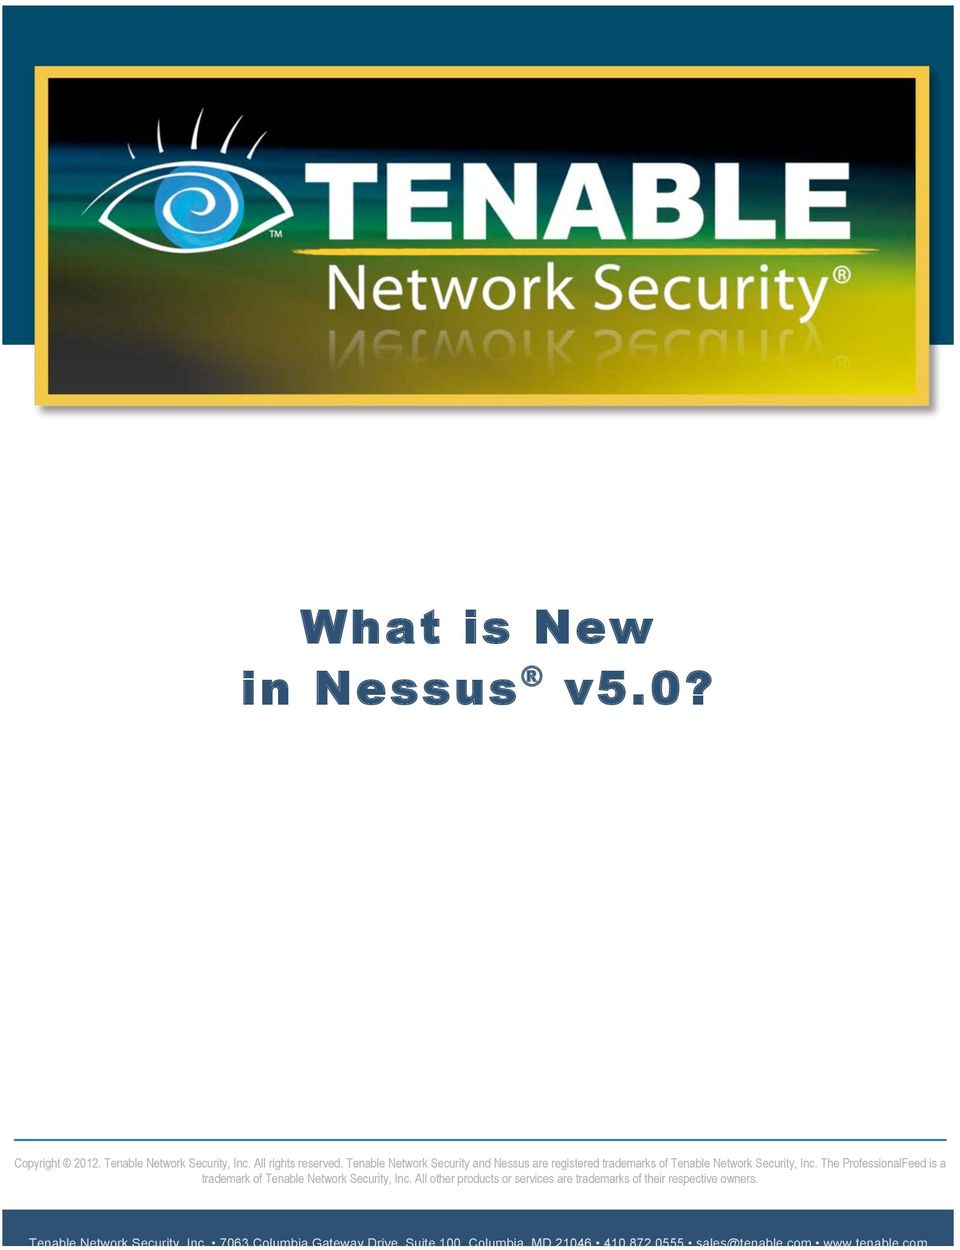 The ProfessionalFeed is a trademark of Tenable Network Security, Inc.